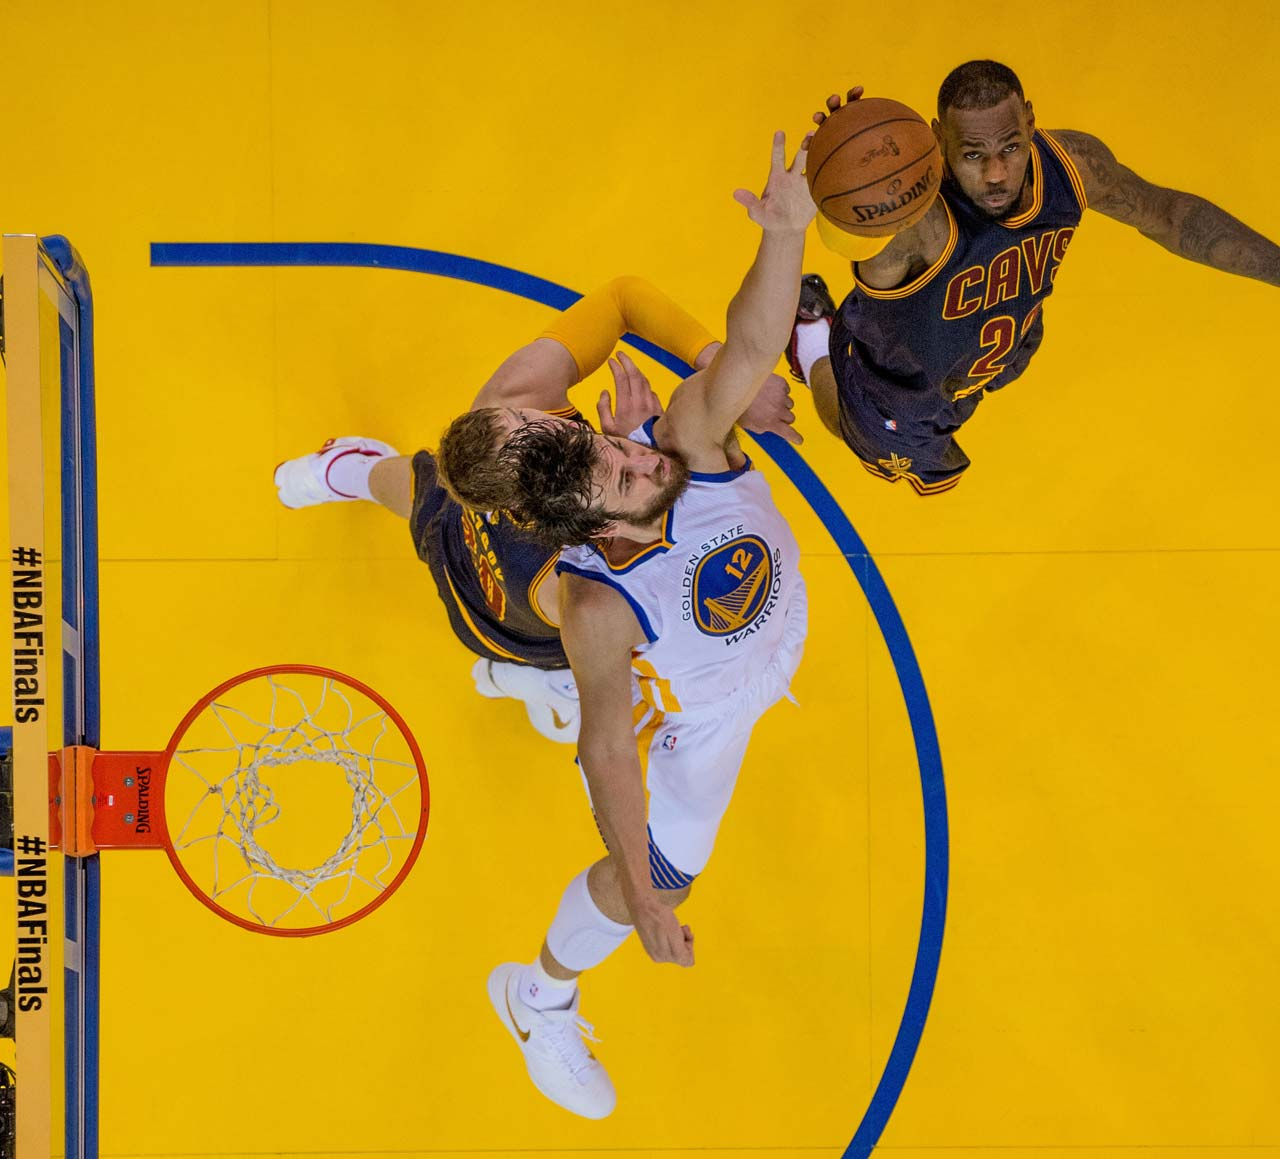 Andrew Bogus battles LeBron James for a rebound. Bogut finished with 10 on the night while James pulled down 16.